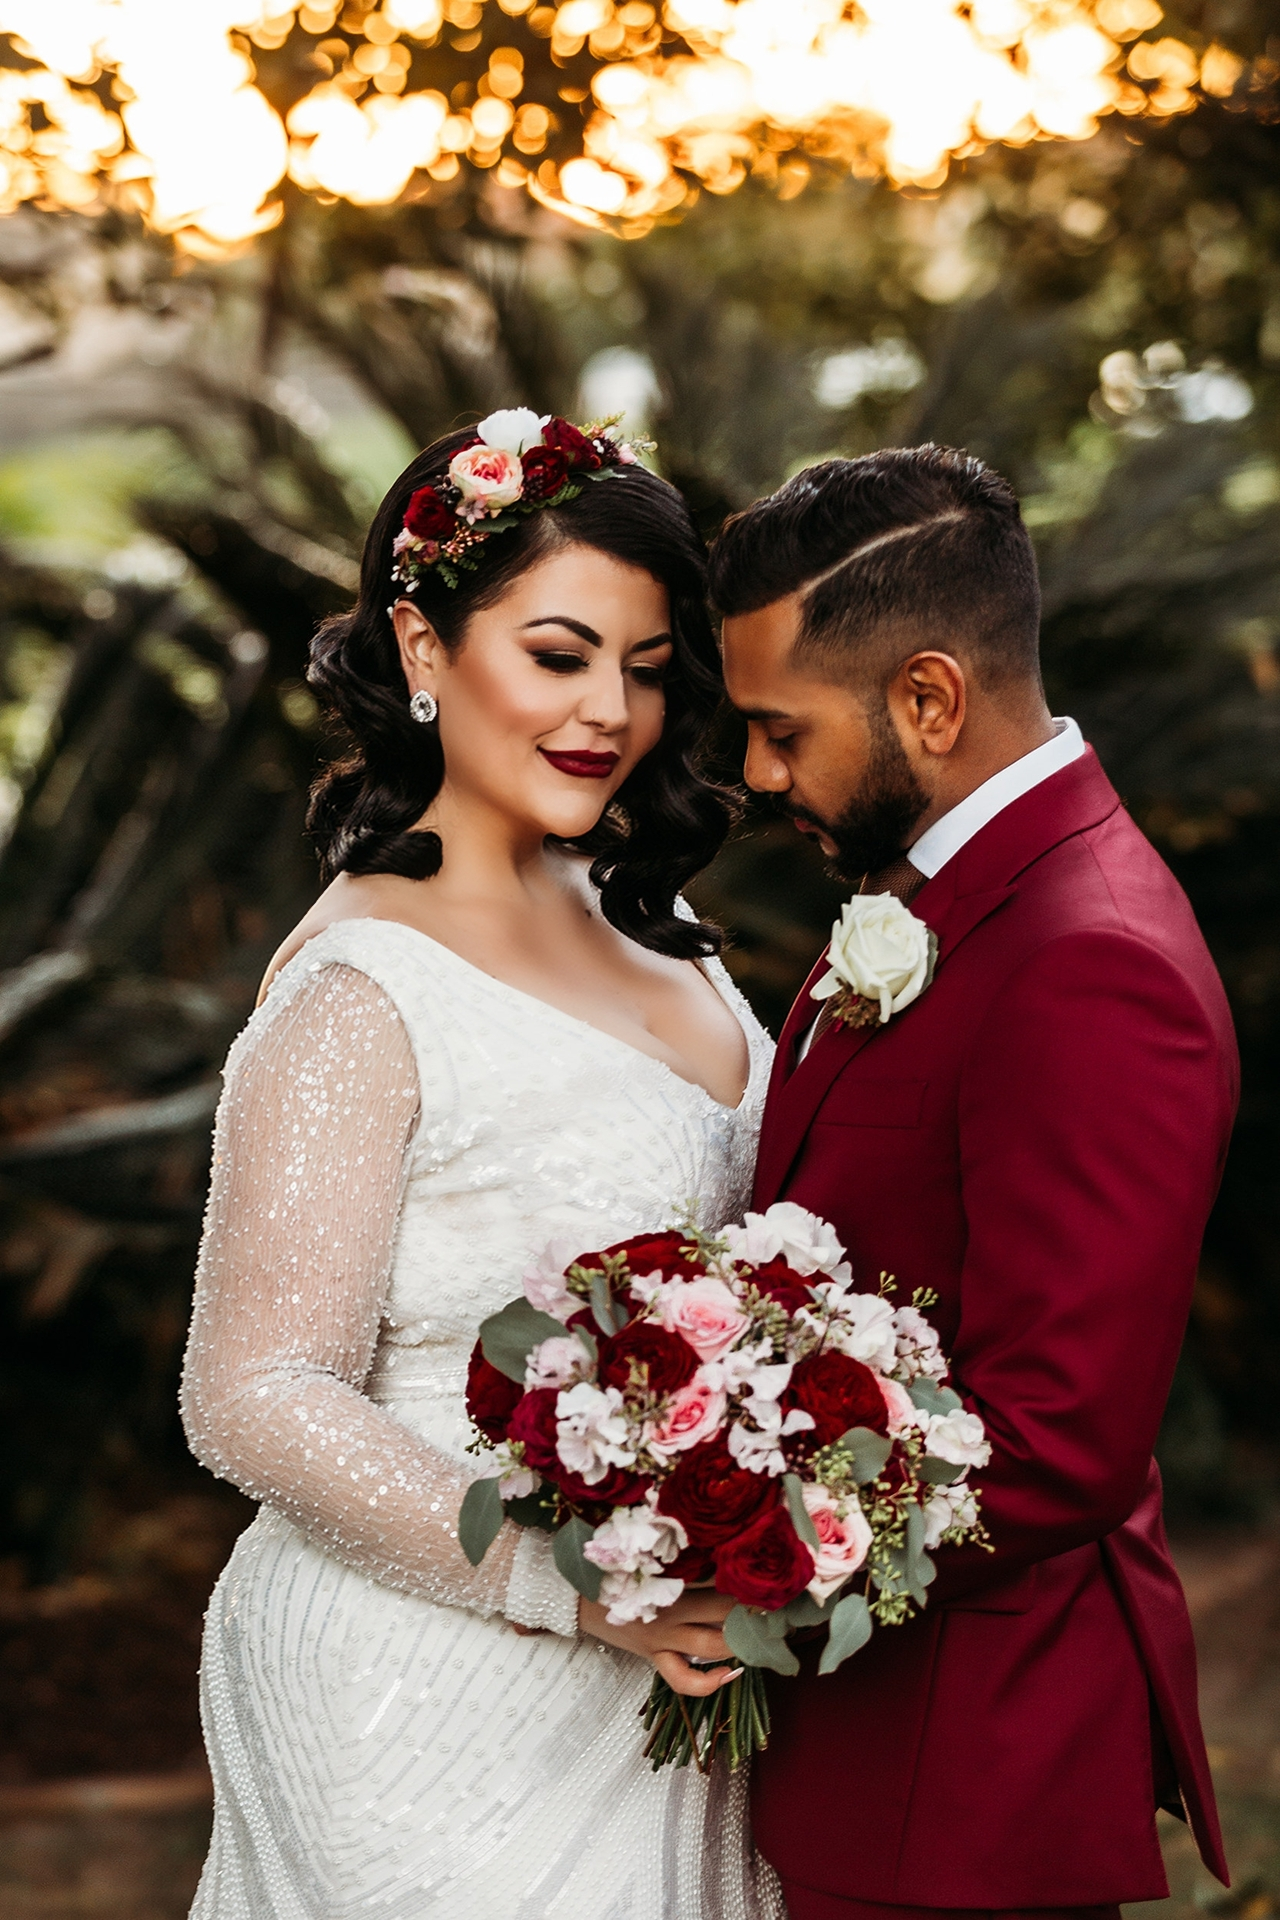 Didem and Richard - Perfect florals to complete our perfect day. Photography by Margan Photography